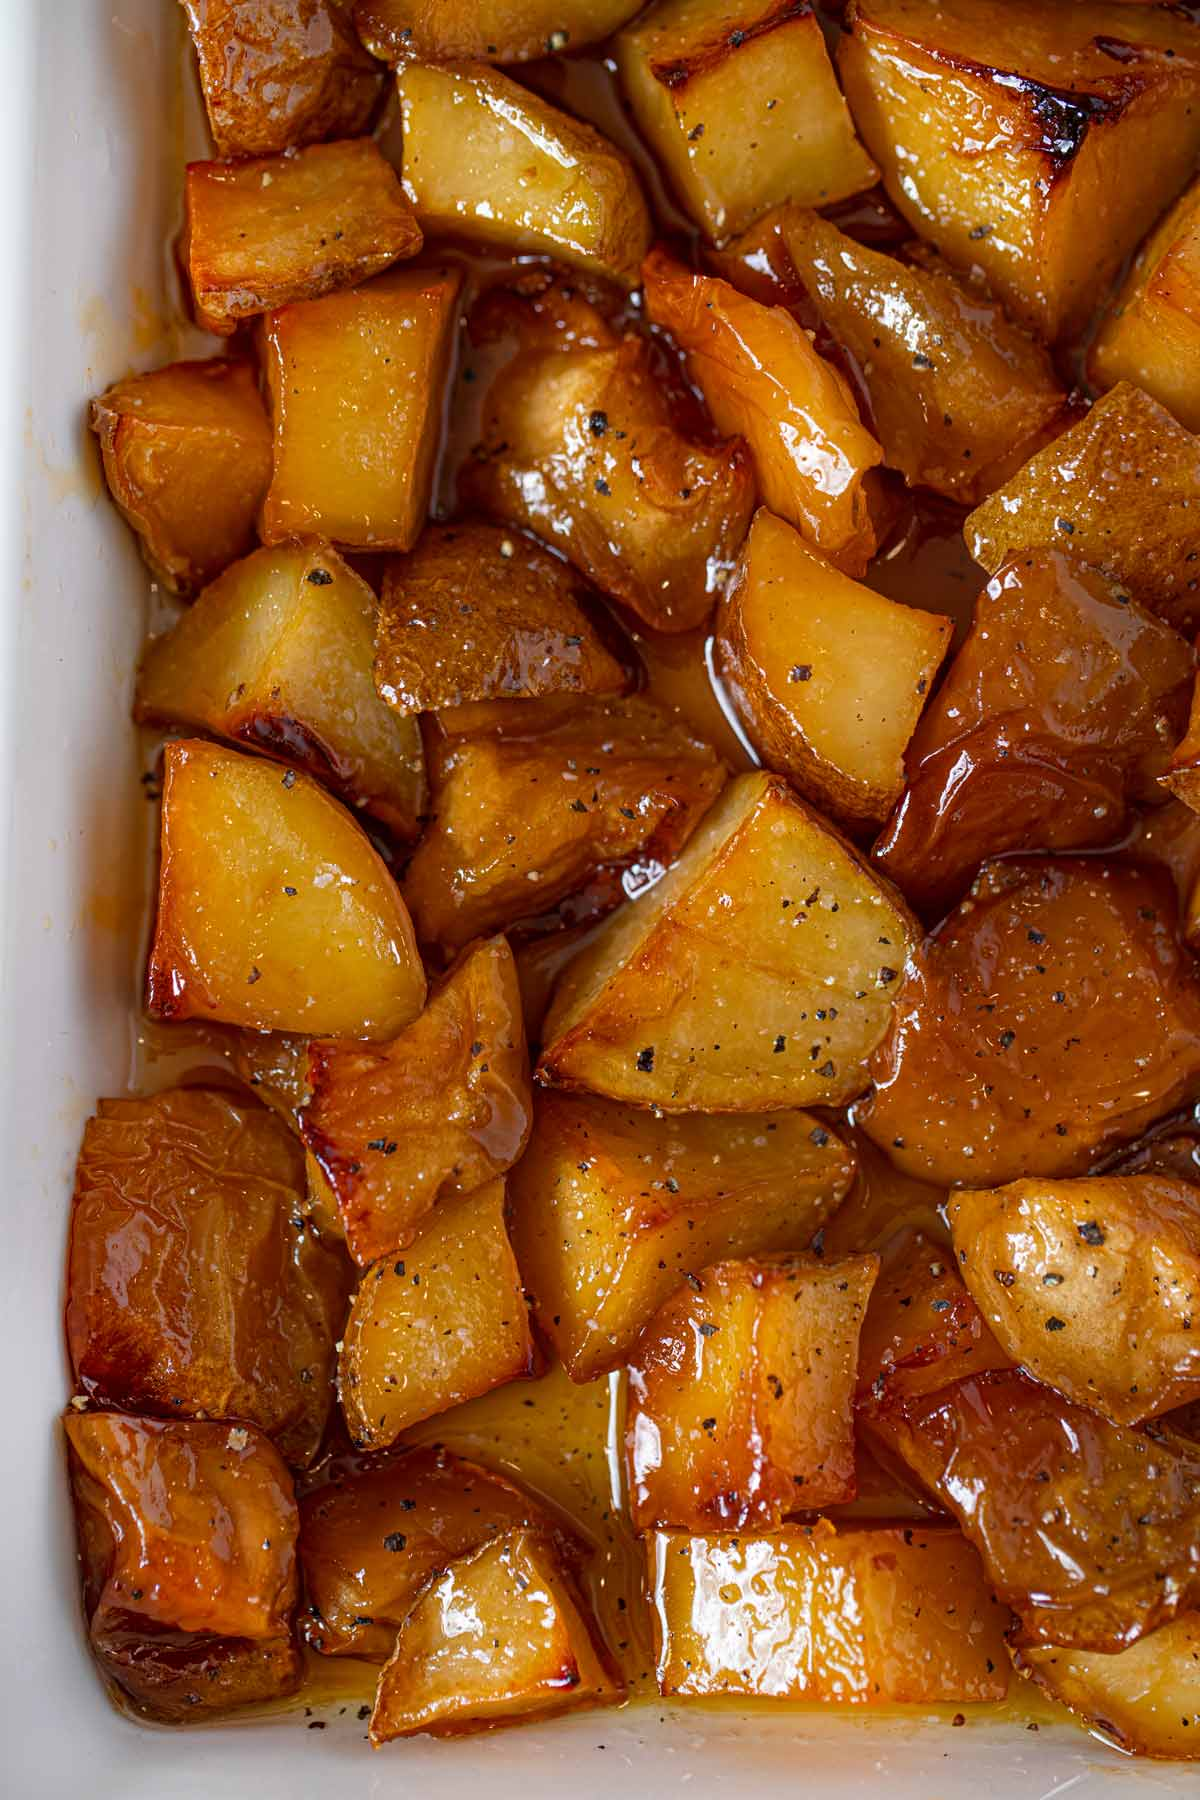 Honey Roasted Apples and Potatoes in baking dish